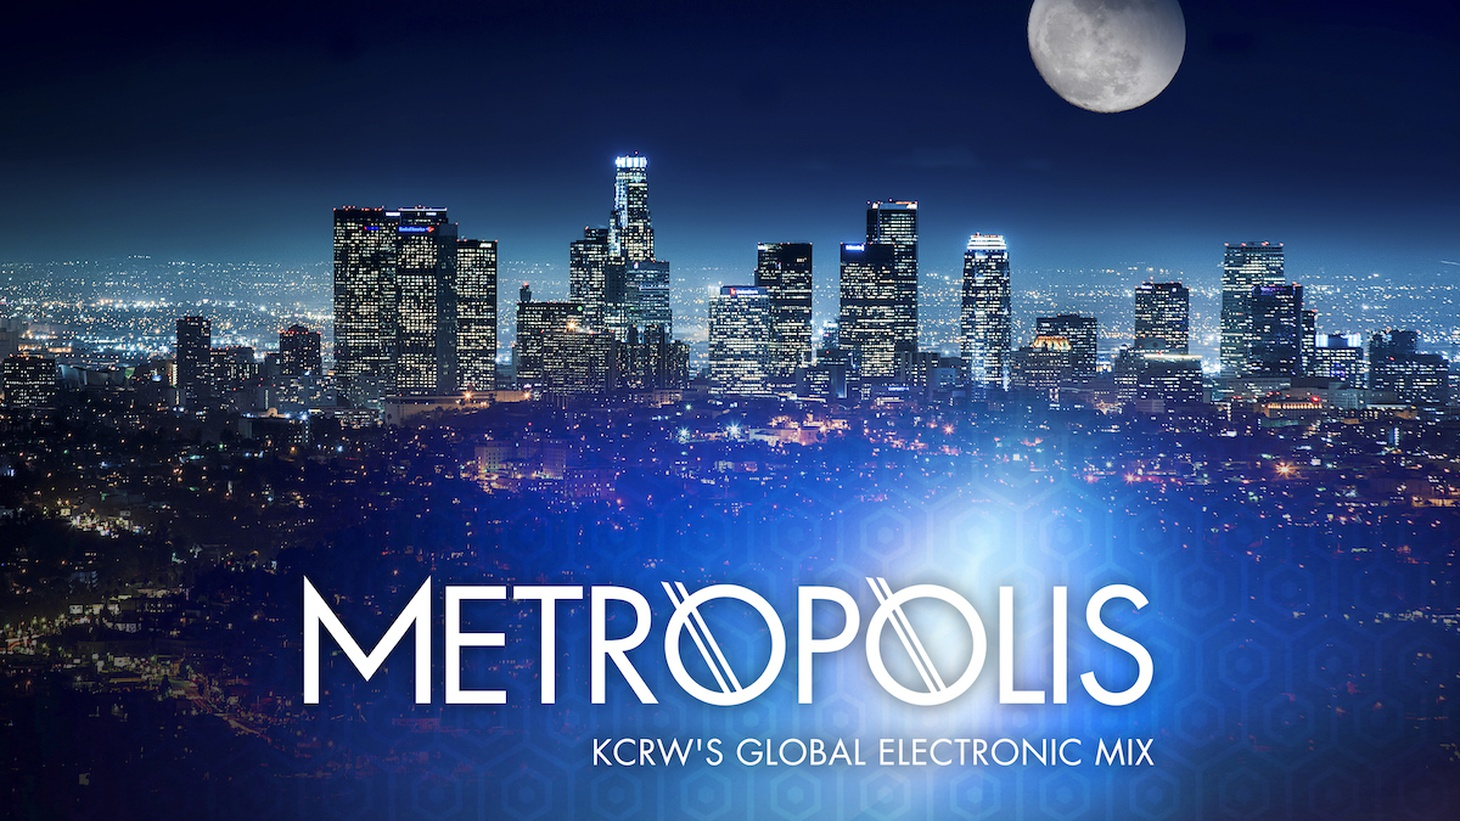 UK dance duo Layo & Bushwacka join Jason Bentley for an interview and guest DJ session on Metropolis at 9 PM.